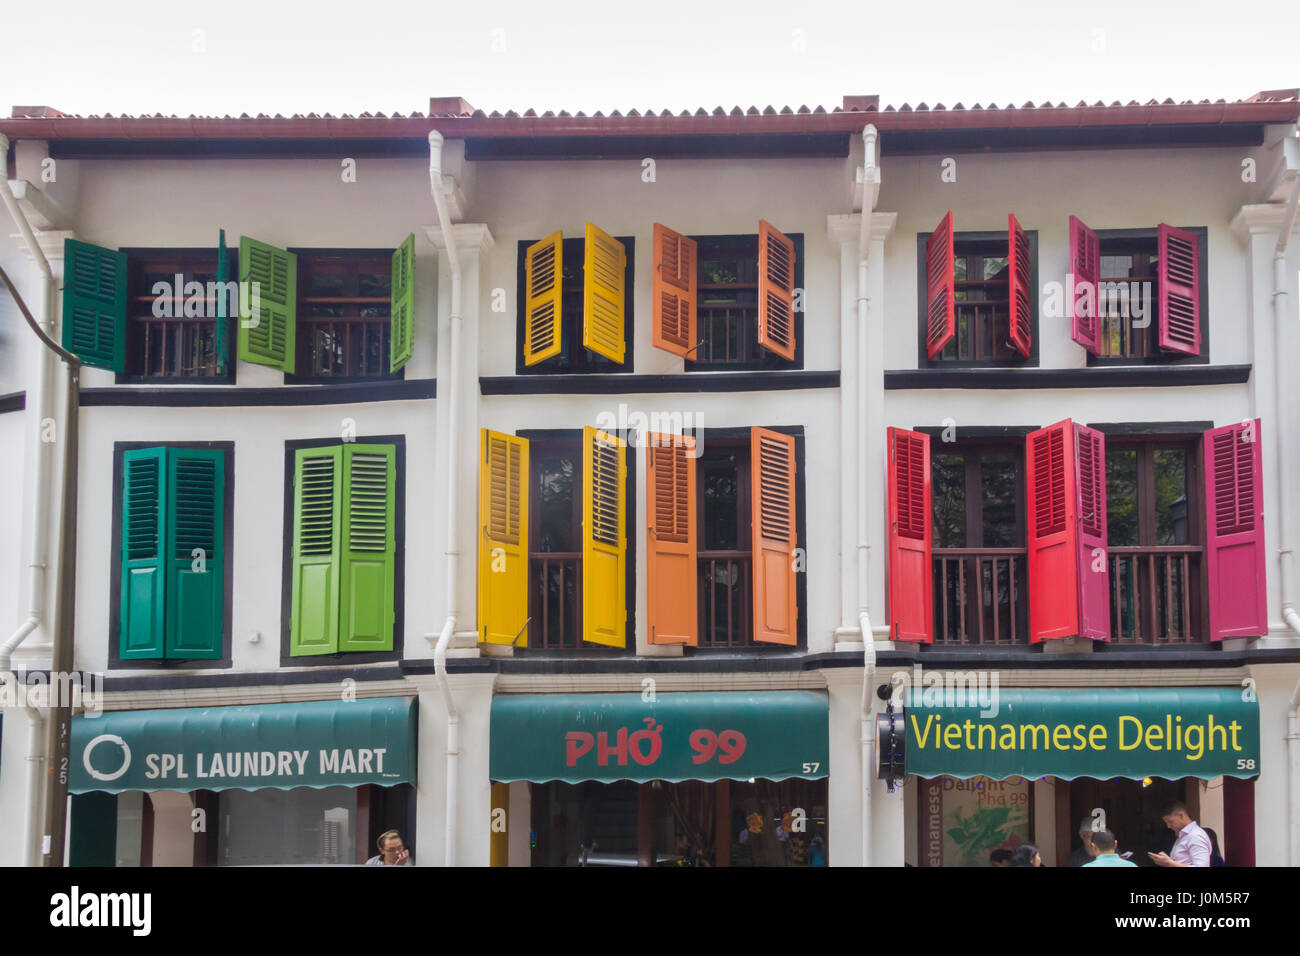 Colourful Chinese shophouses in Telok Ayer street, Singapore - Stock Image